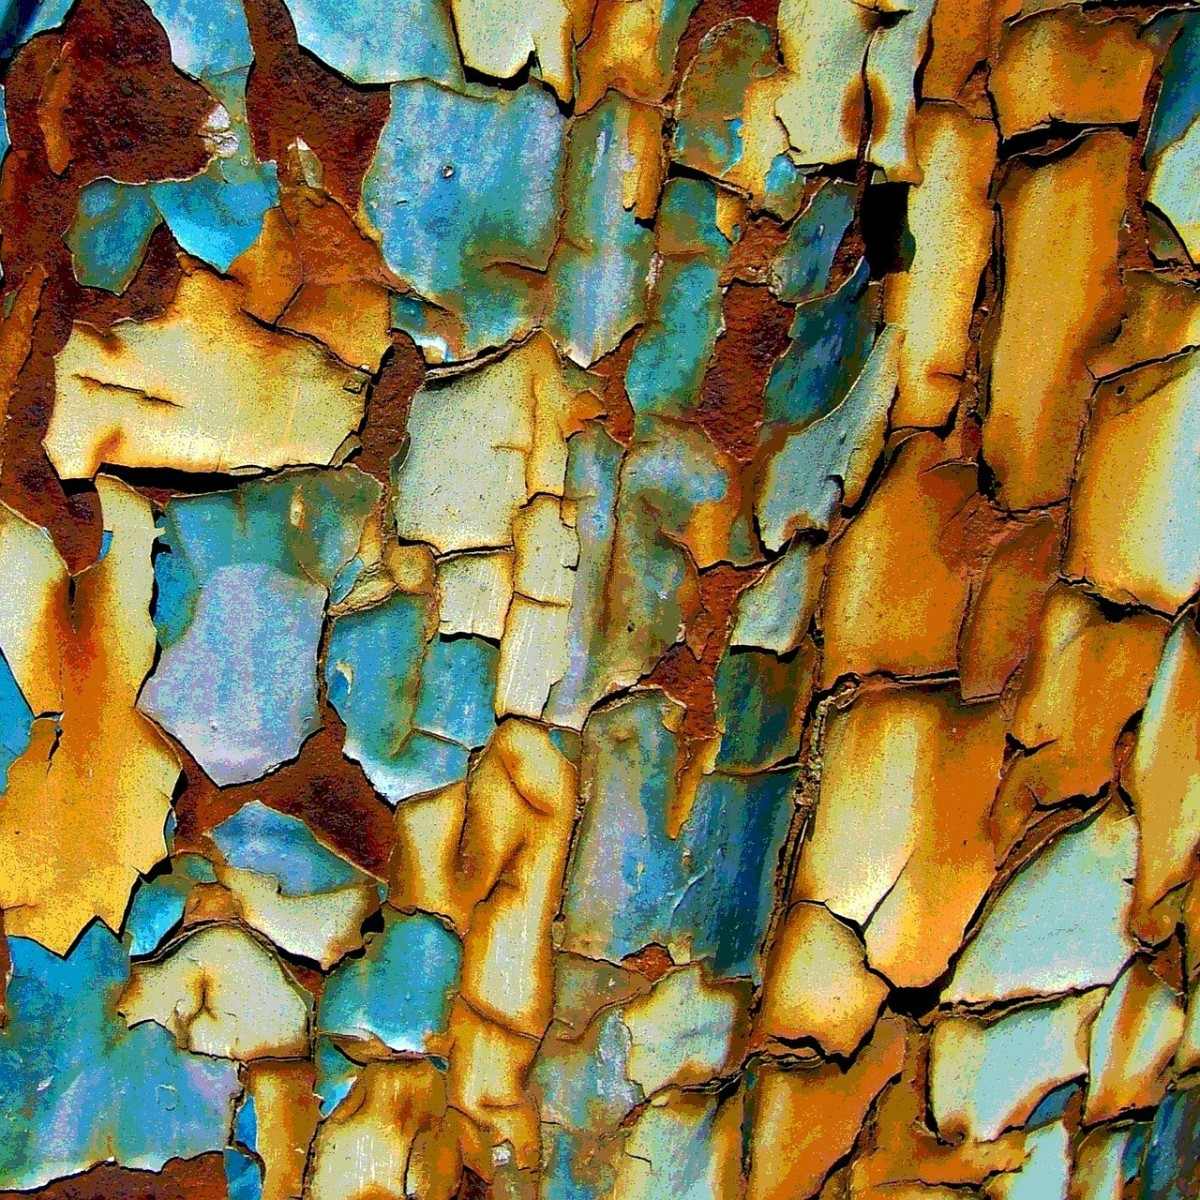 Rust on a shipping container